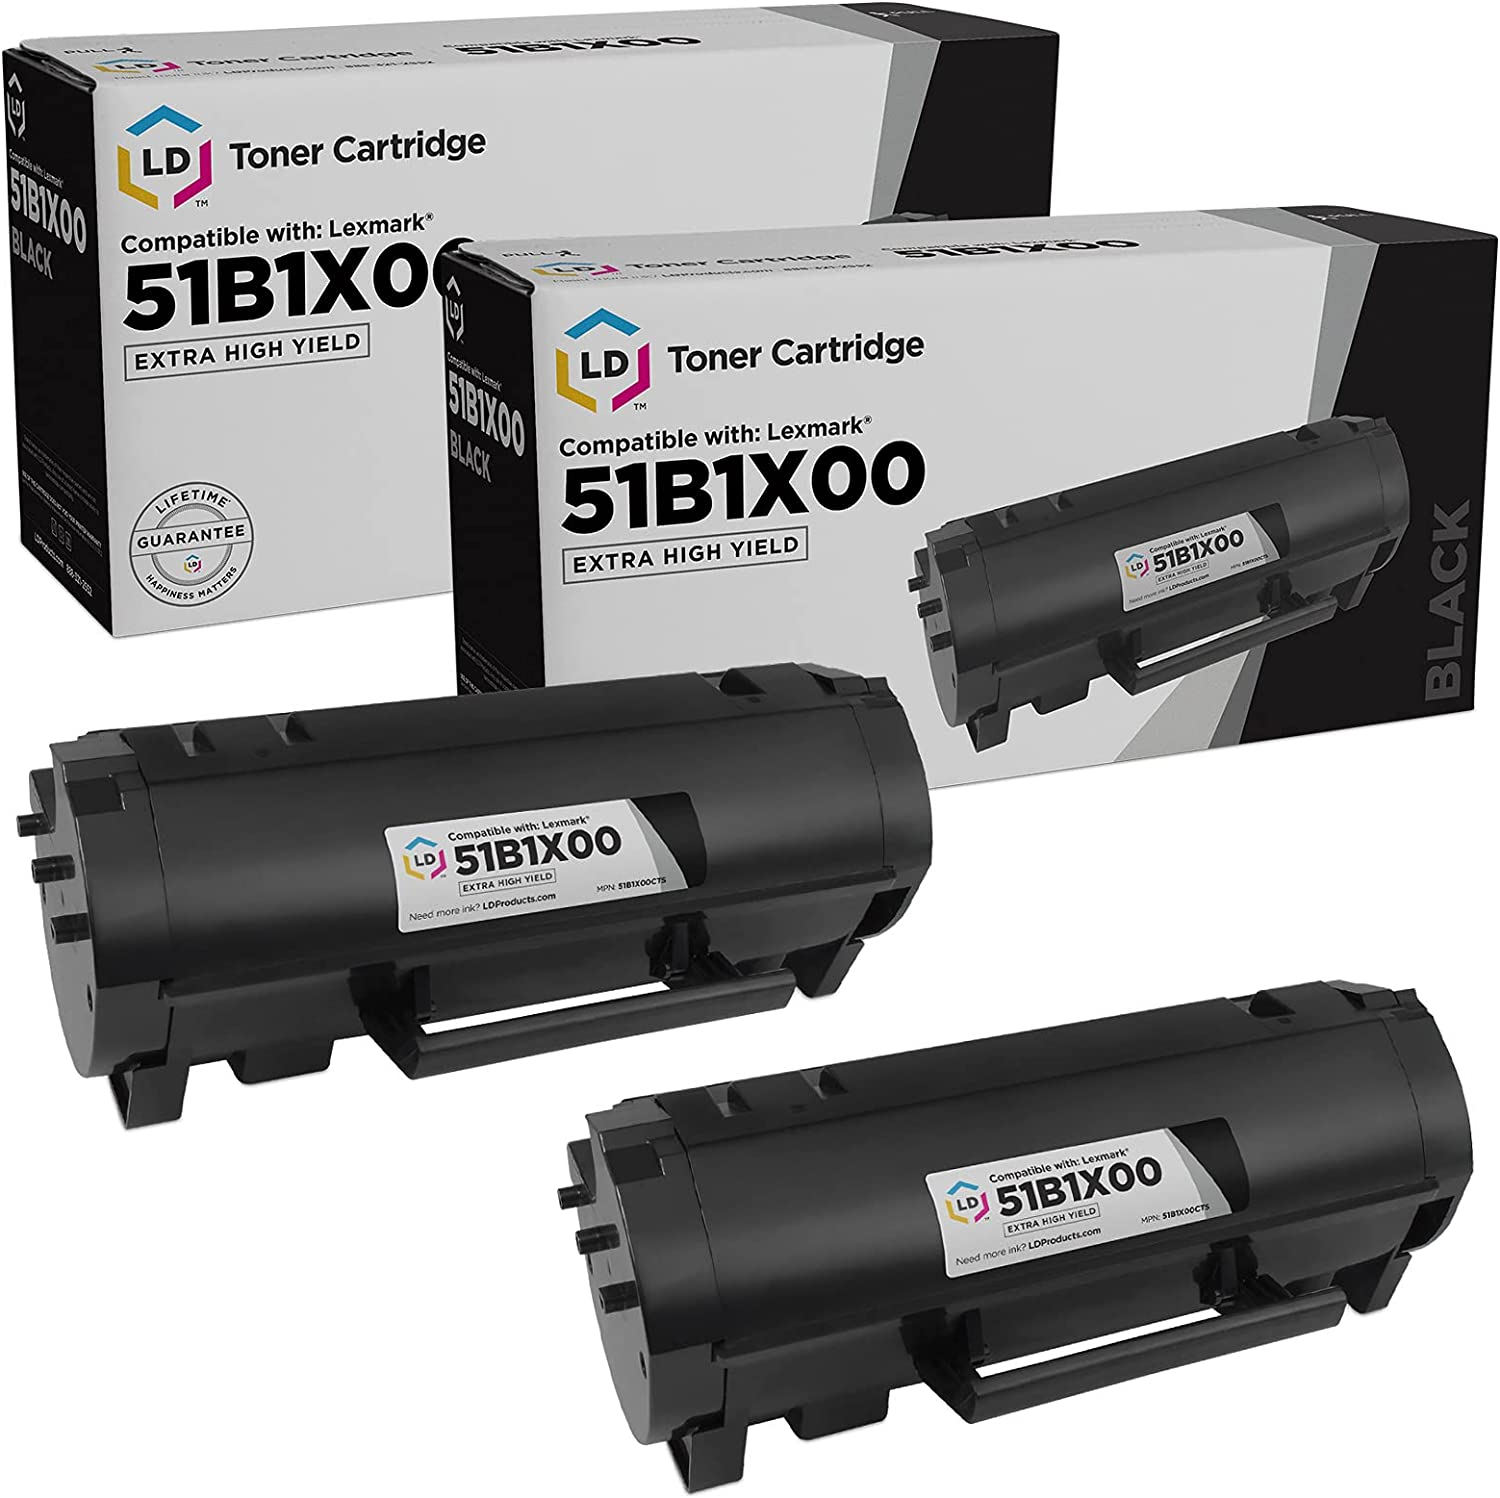 LD Compatible 無料 Toner Cartridge Replacements Lexmark 51B1X00 for 買い取り E